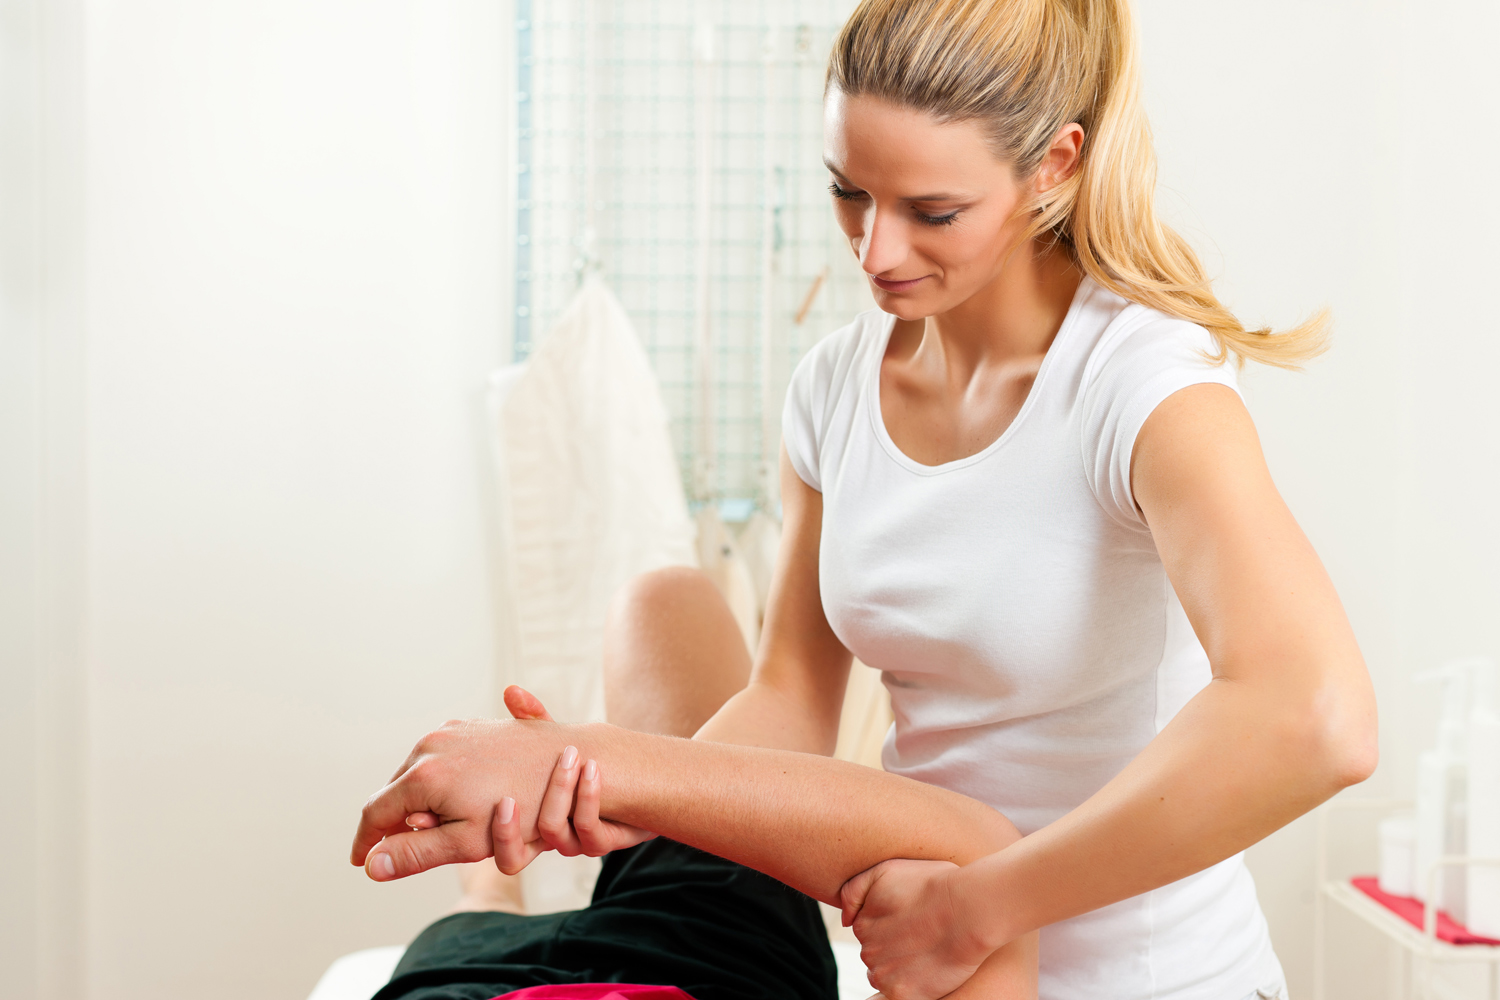 Carapella Chiropractic Adjustment